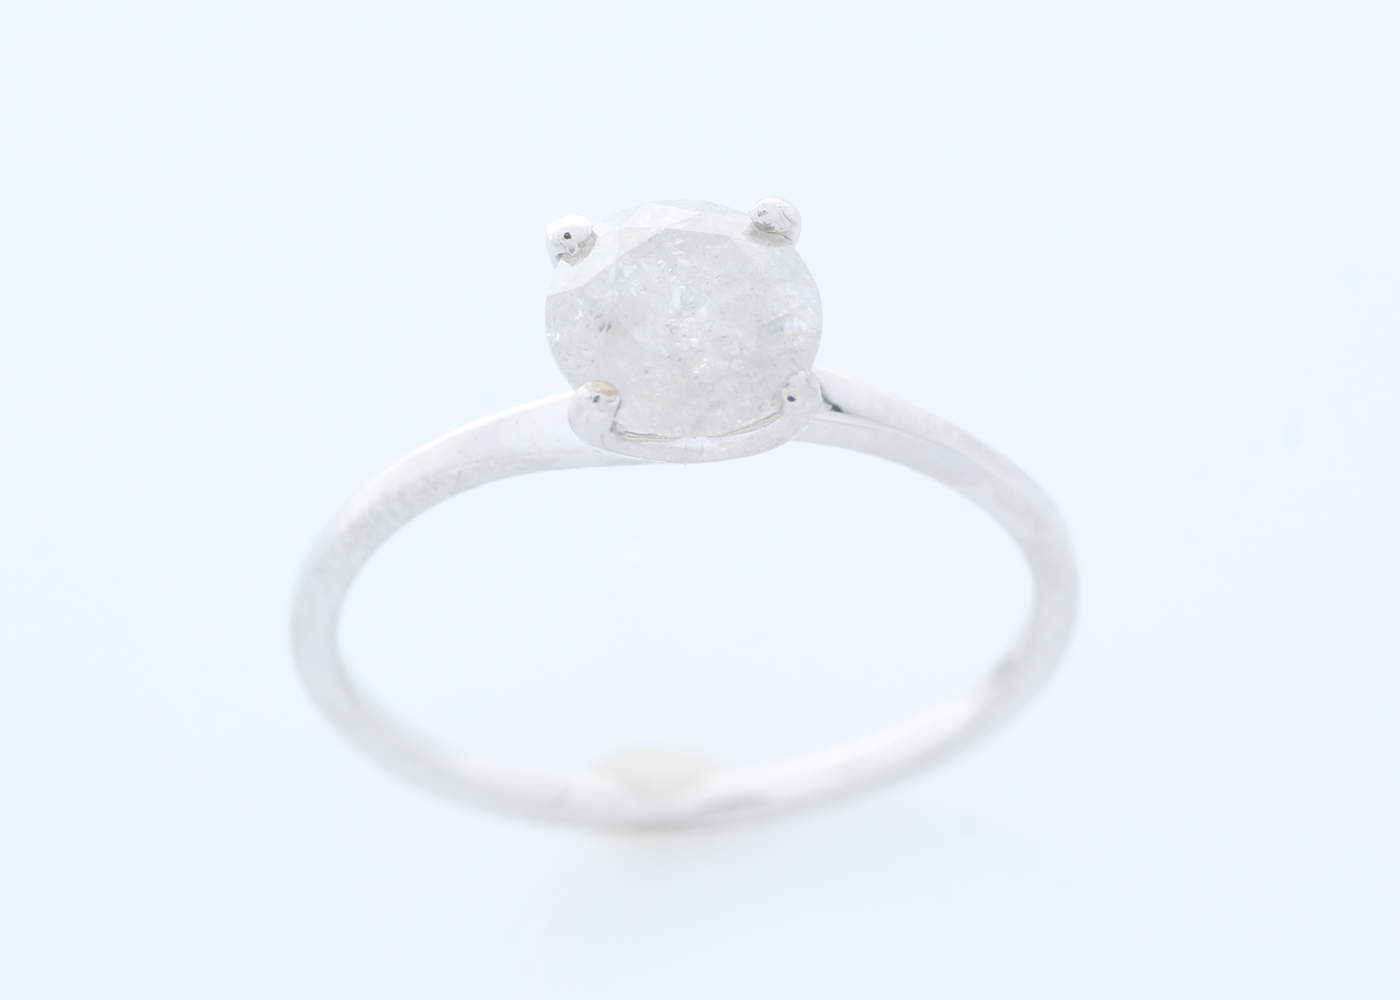 18k White Gold Wire Set Diamond Ring 1.05 Carats - Image 2 of 4